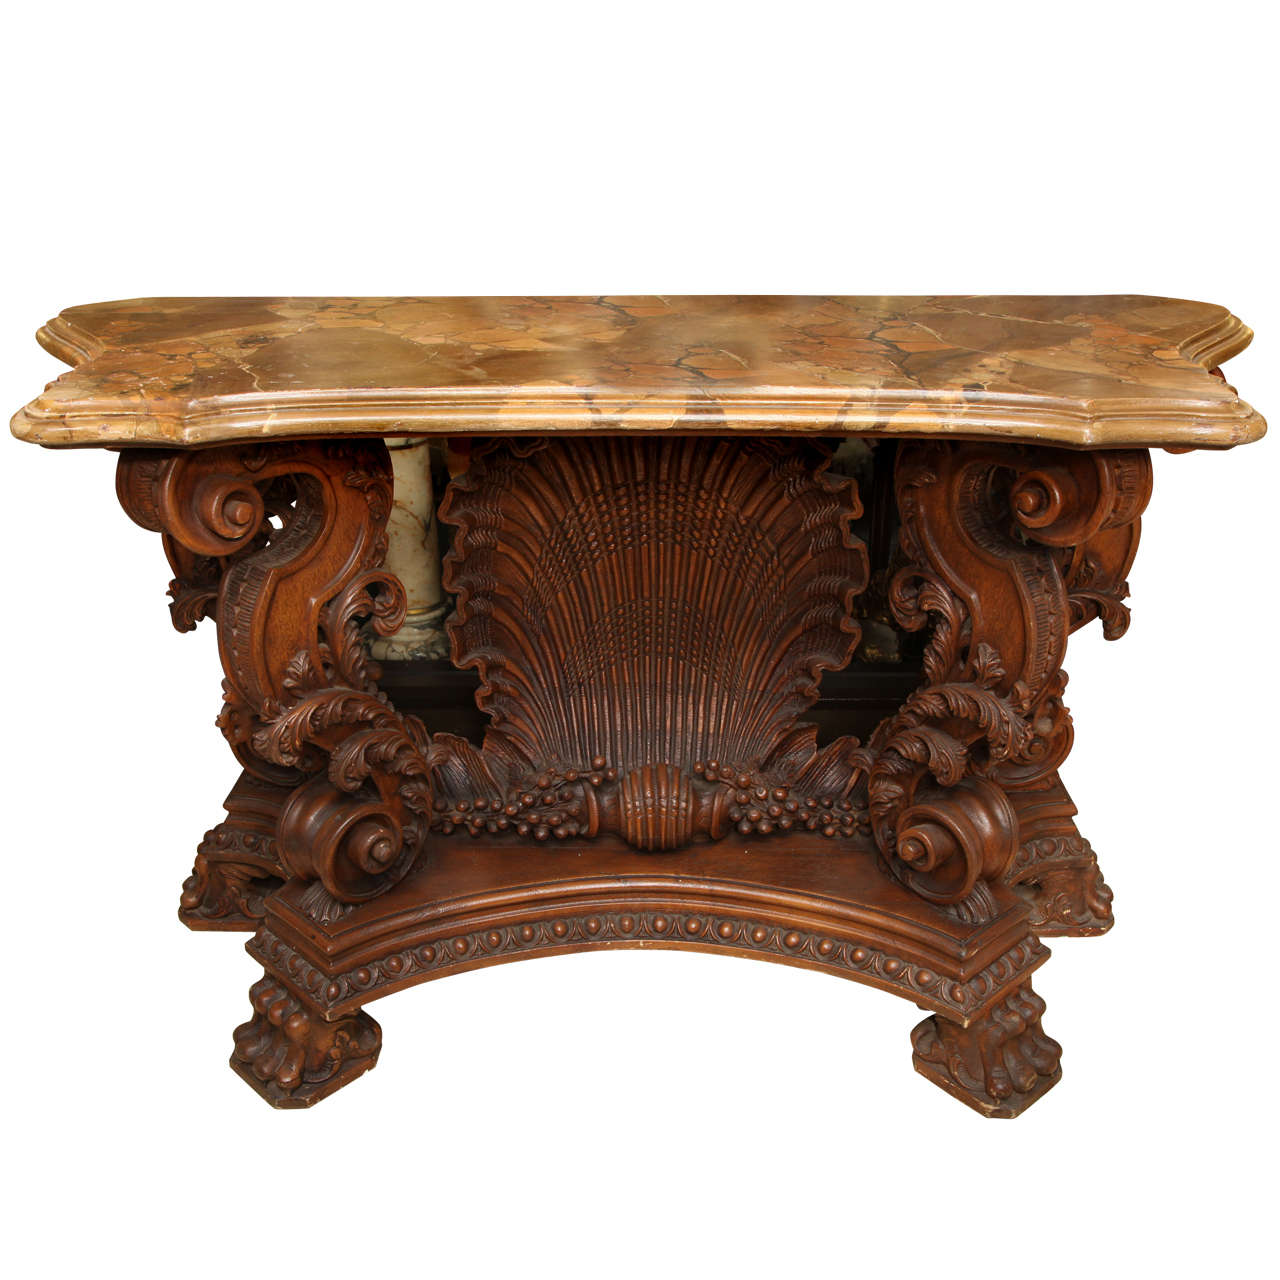 Italian rococo style shell motif console for sale at 1stdibs for Rococo style furniture